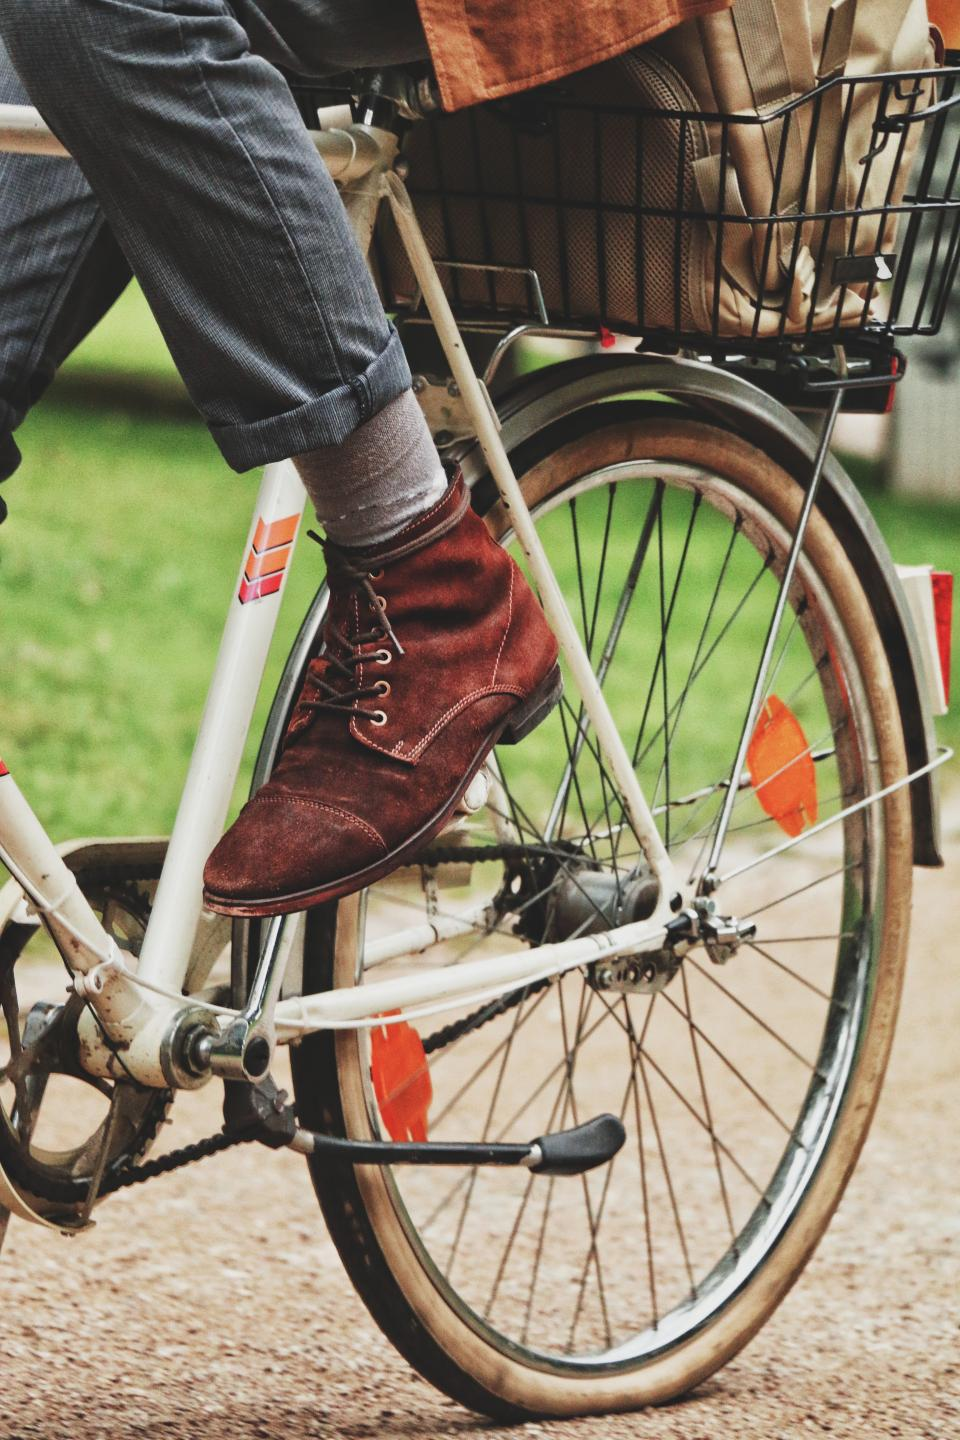 Free stock photo of bicycle rusty